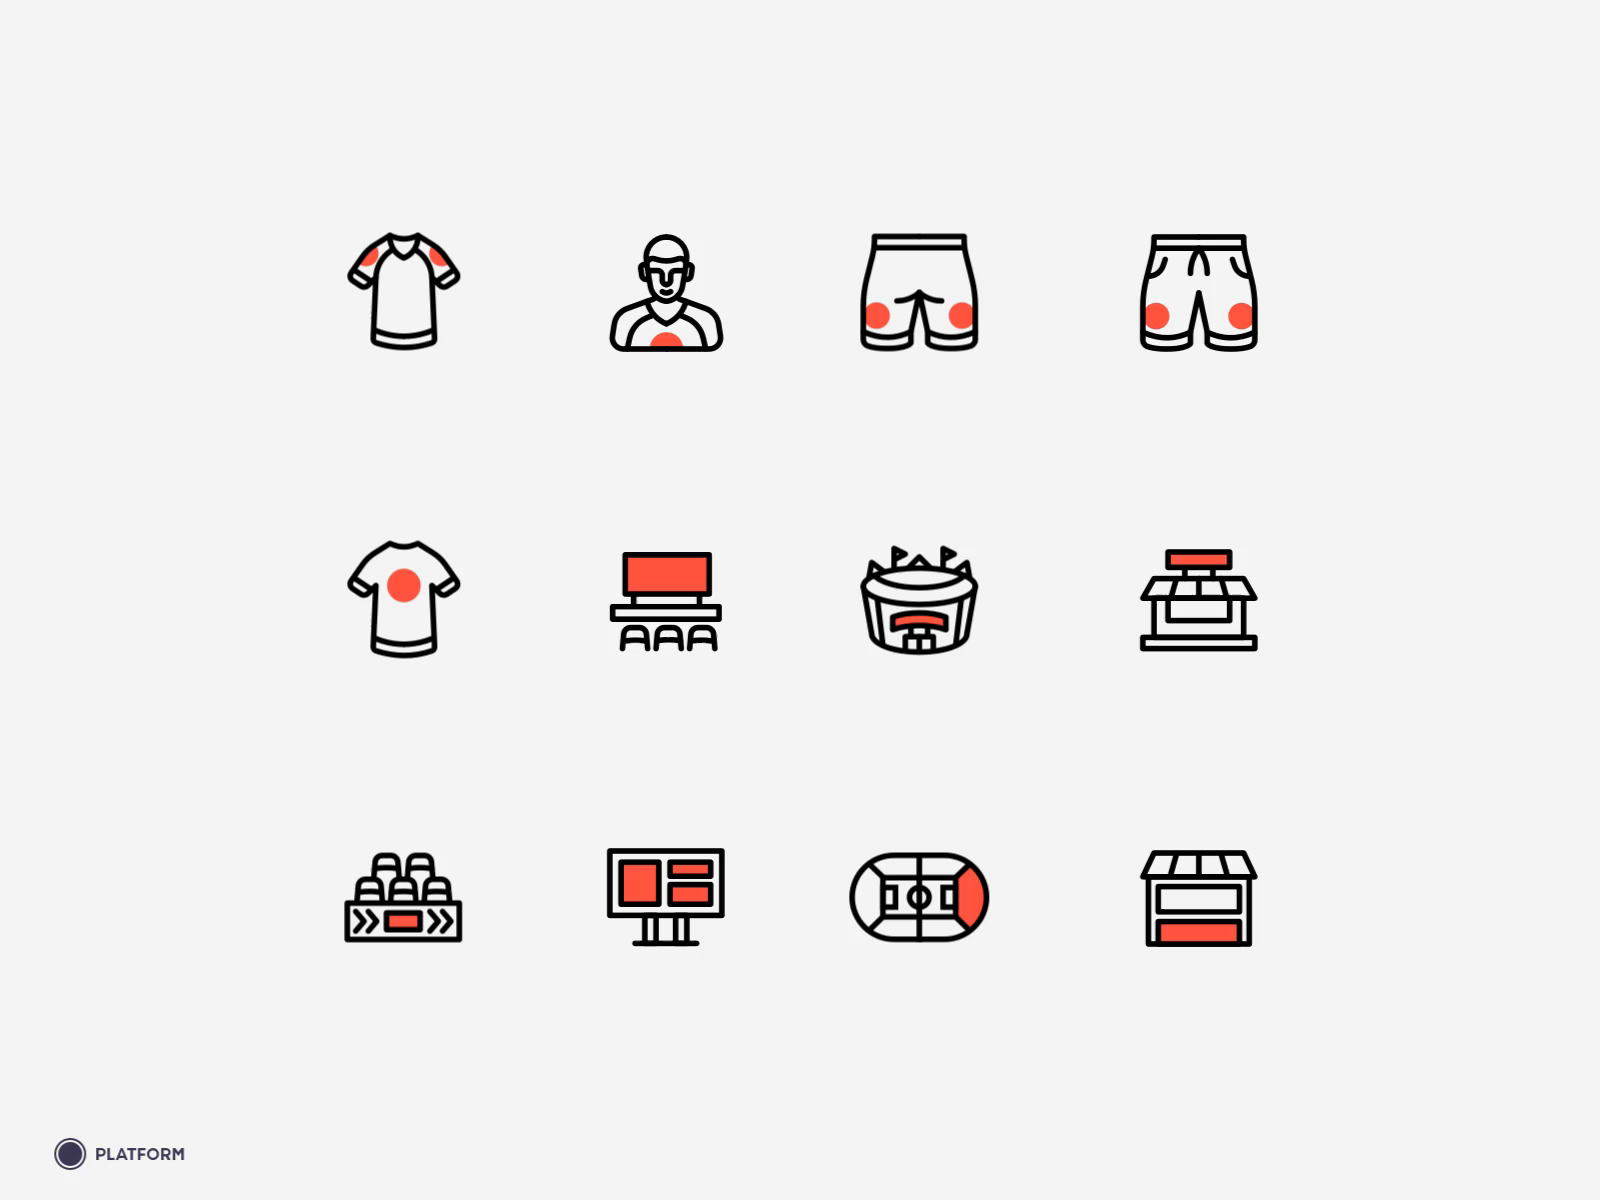 Sponsor Online Inventory Icons By Platform Icon Inventory Icon Design